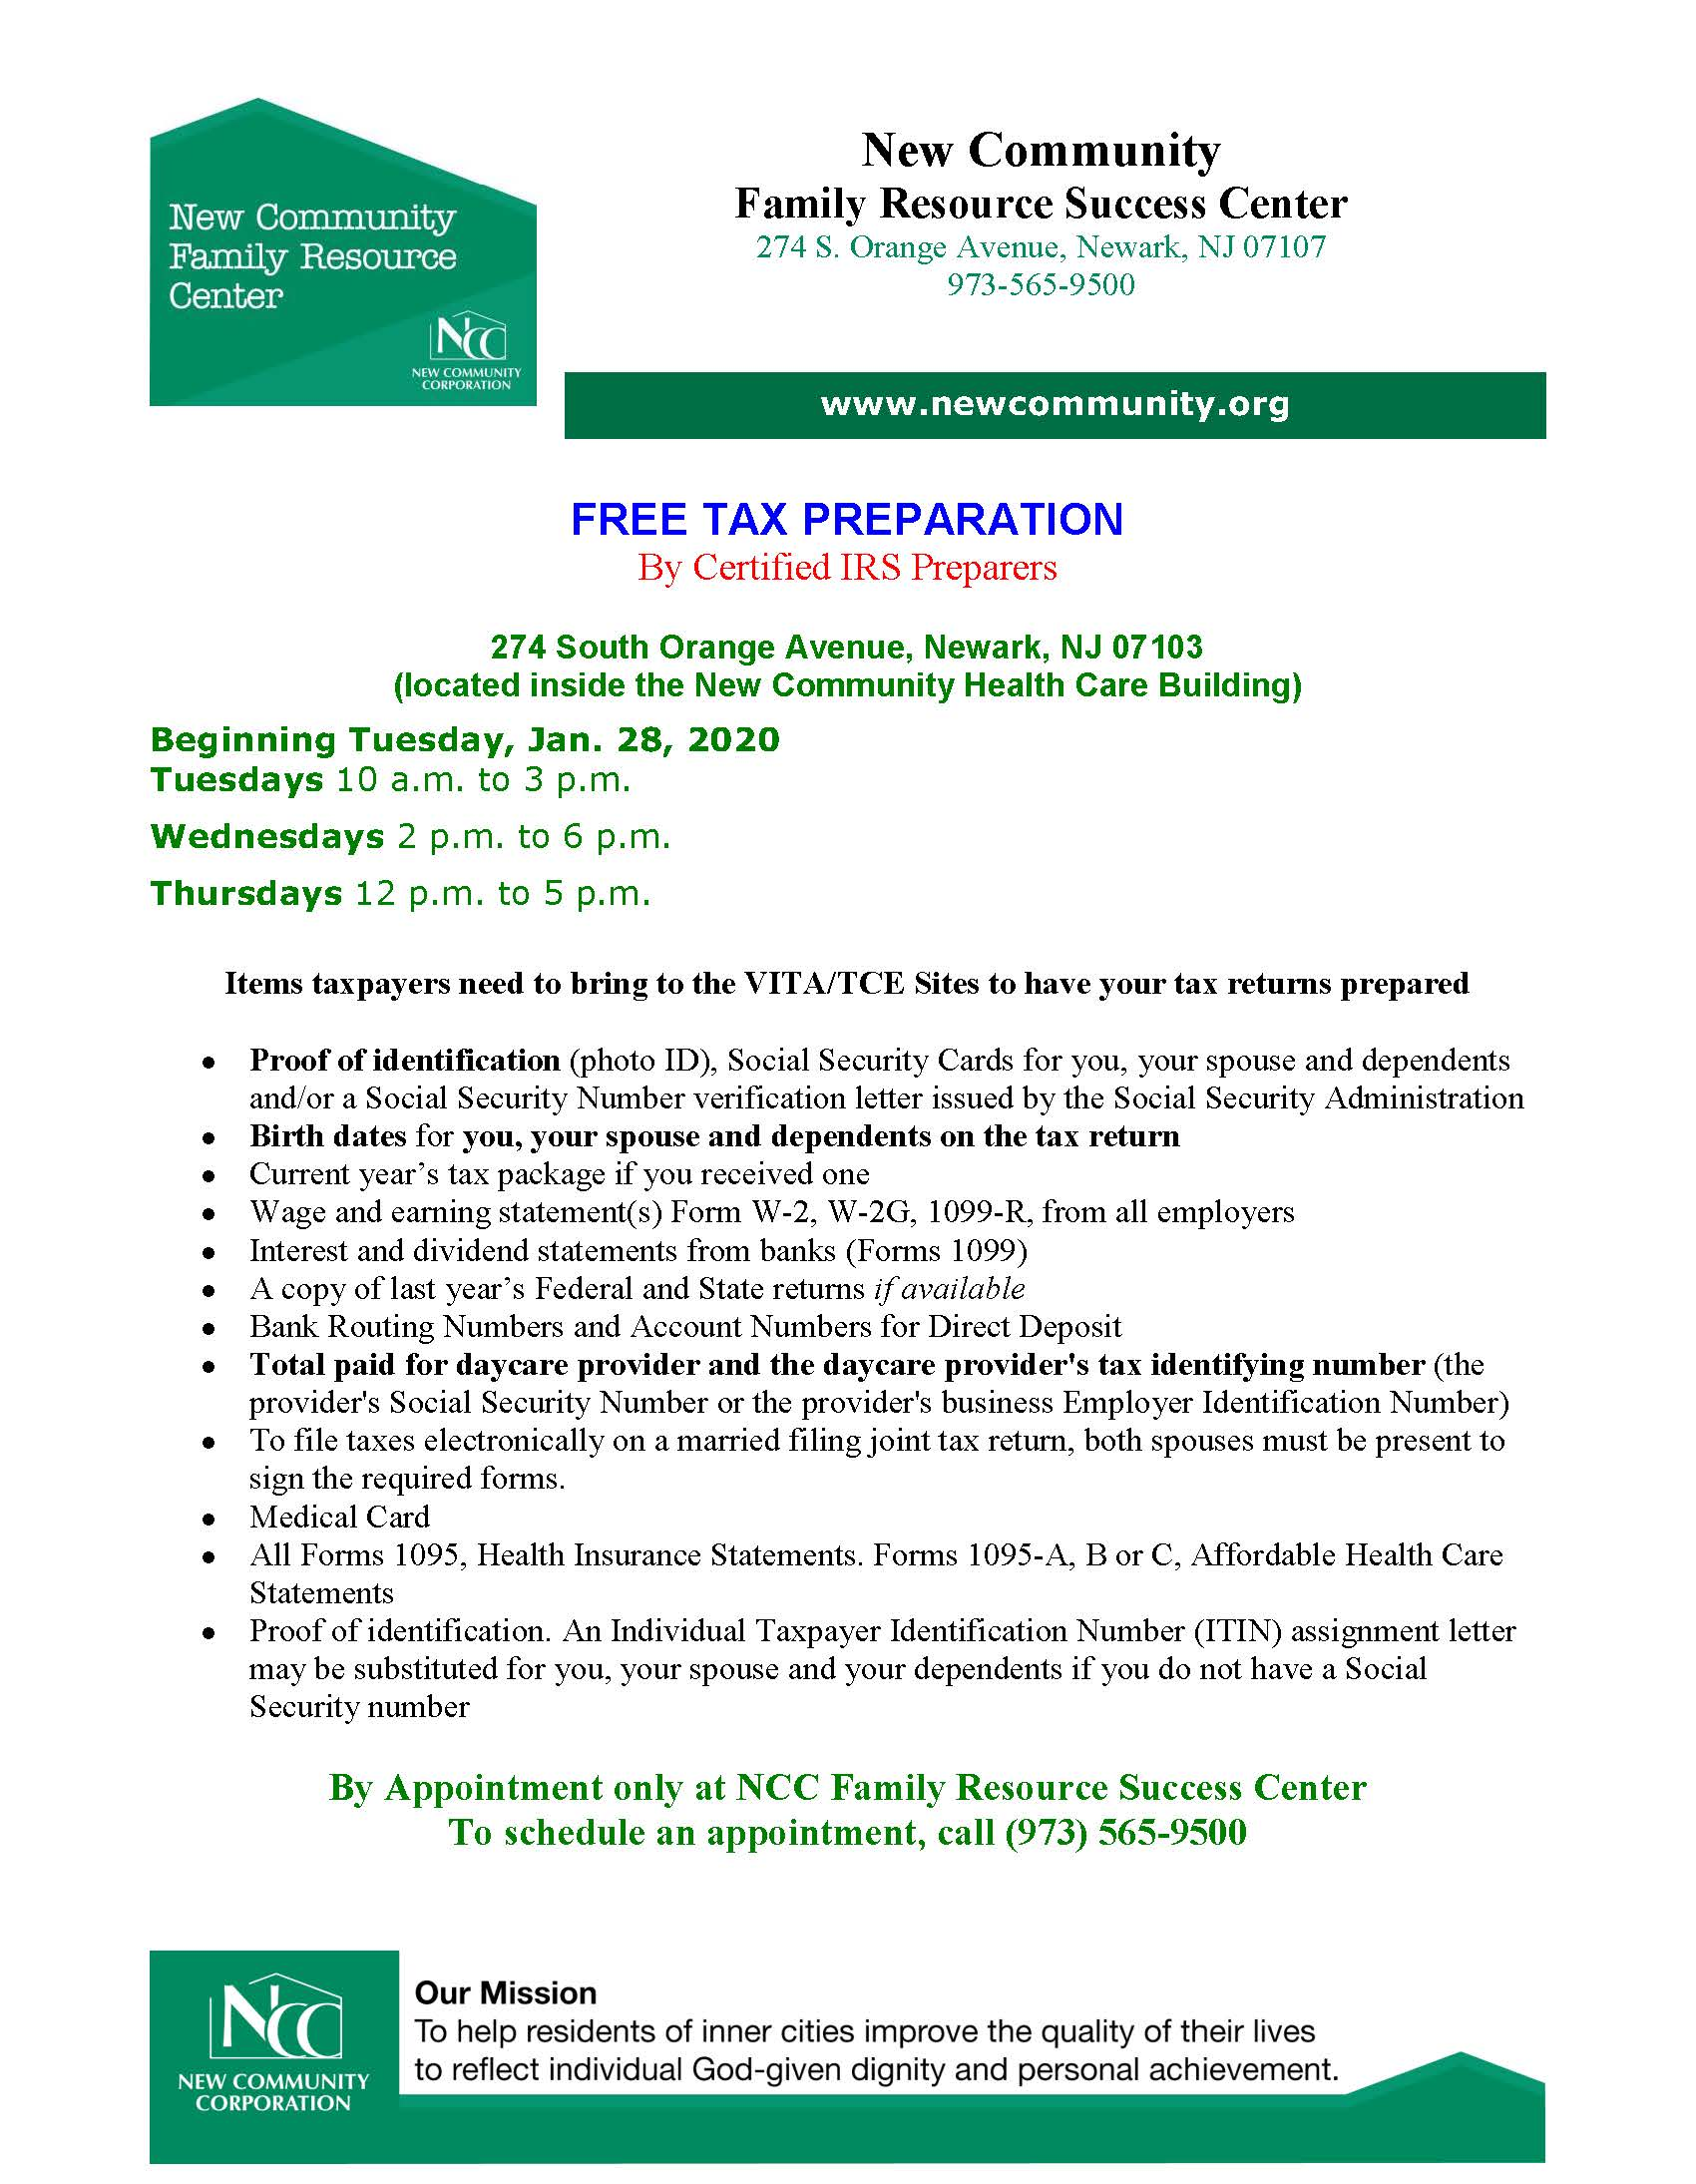 Free Tax Prep Available at Family Resource Success Center